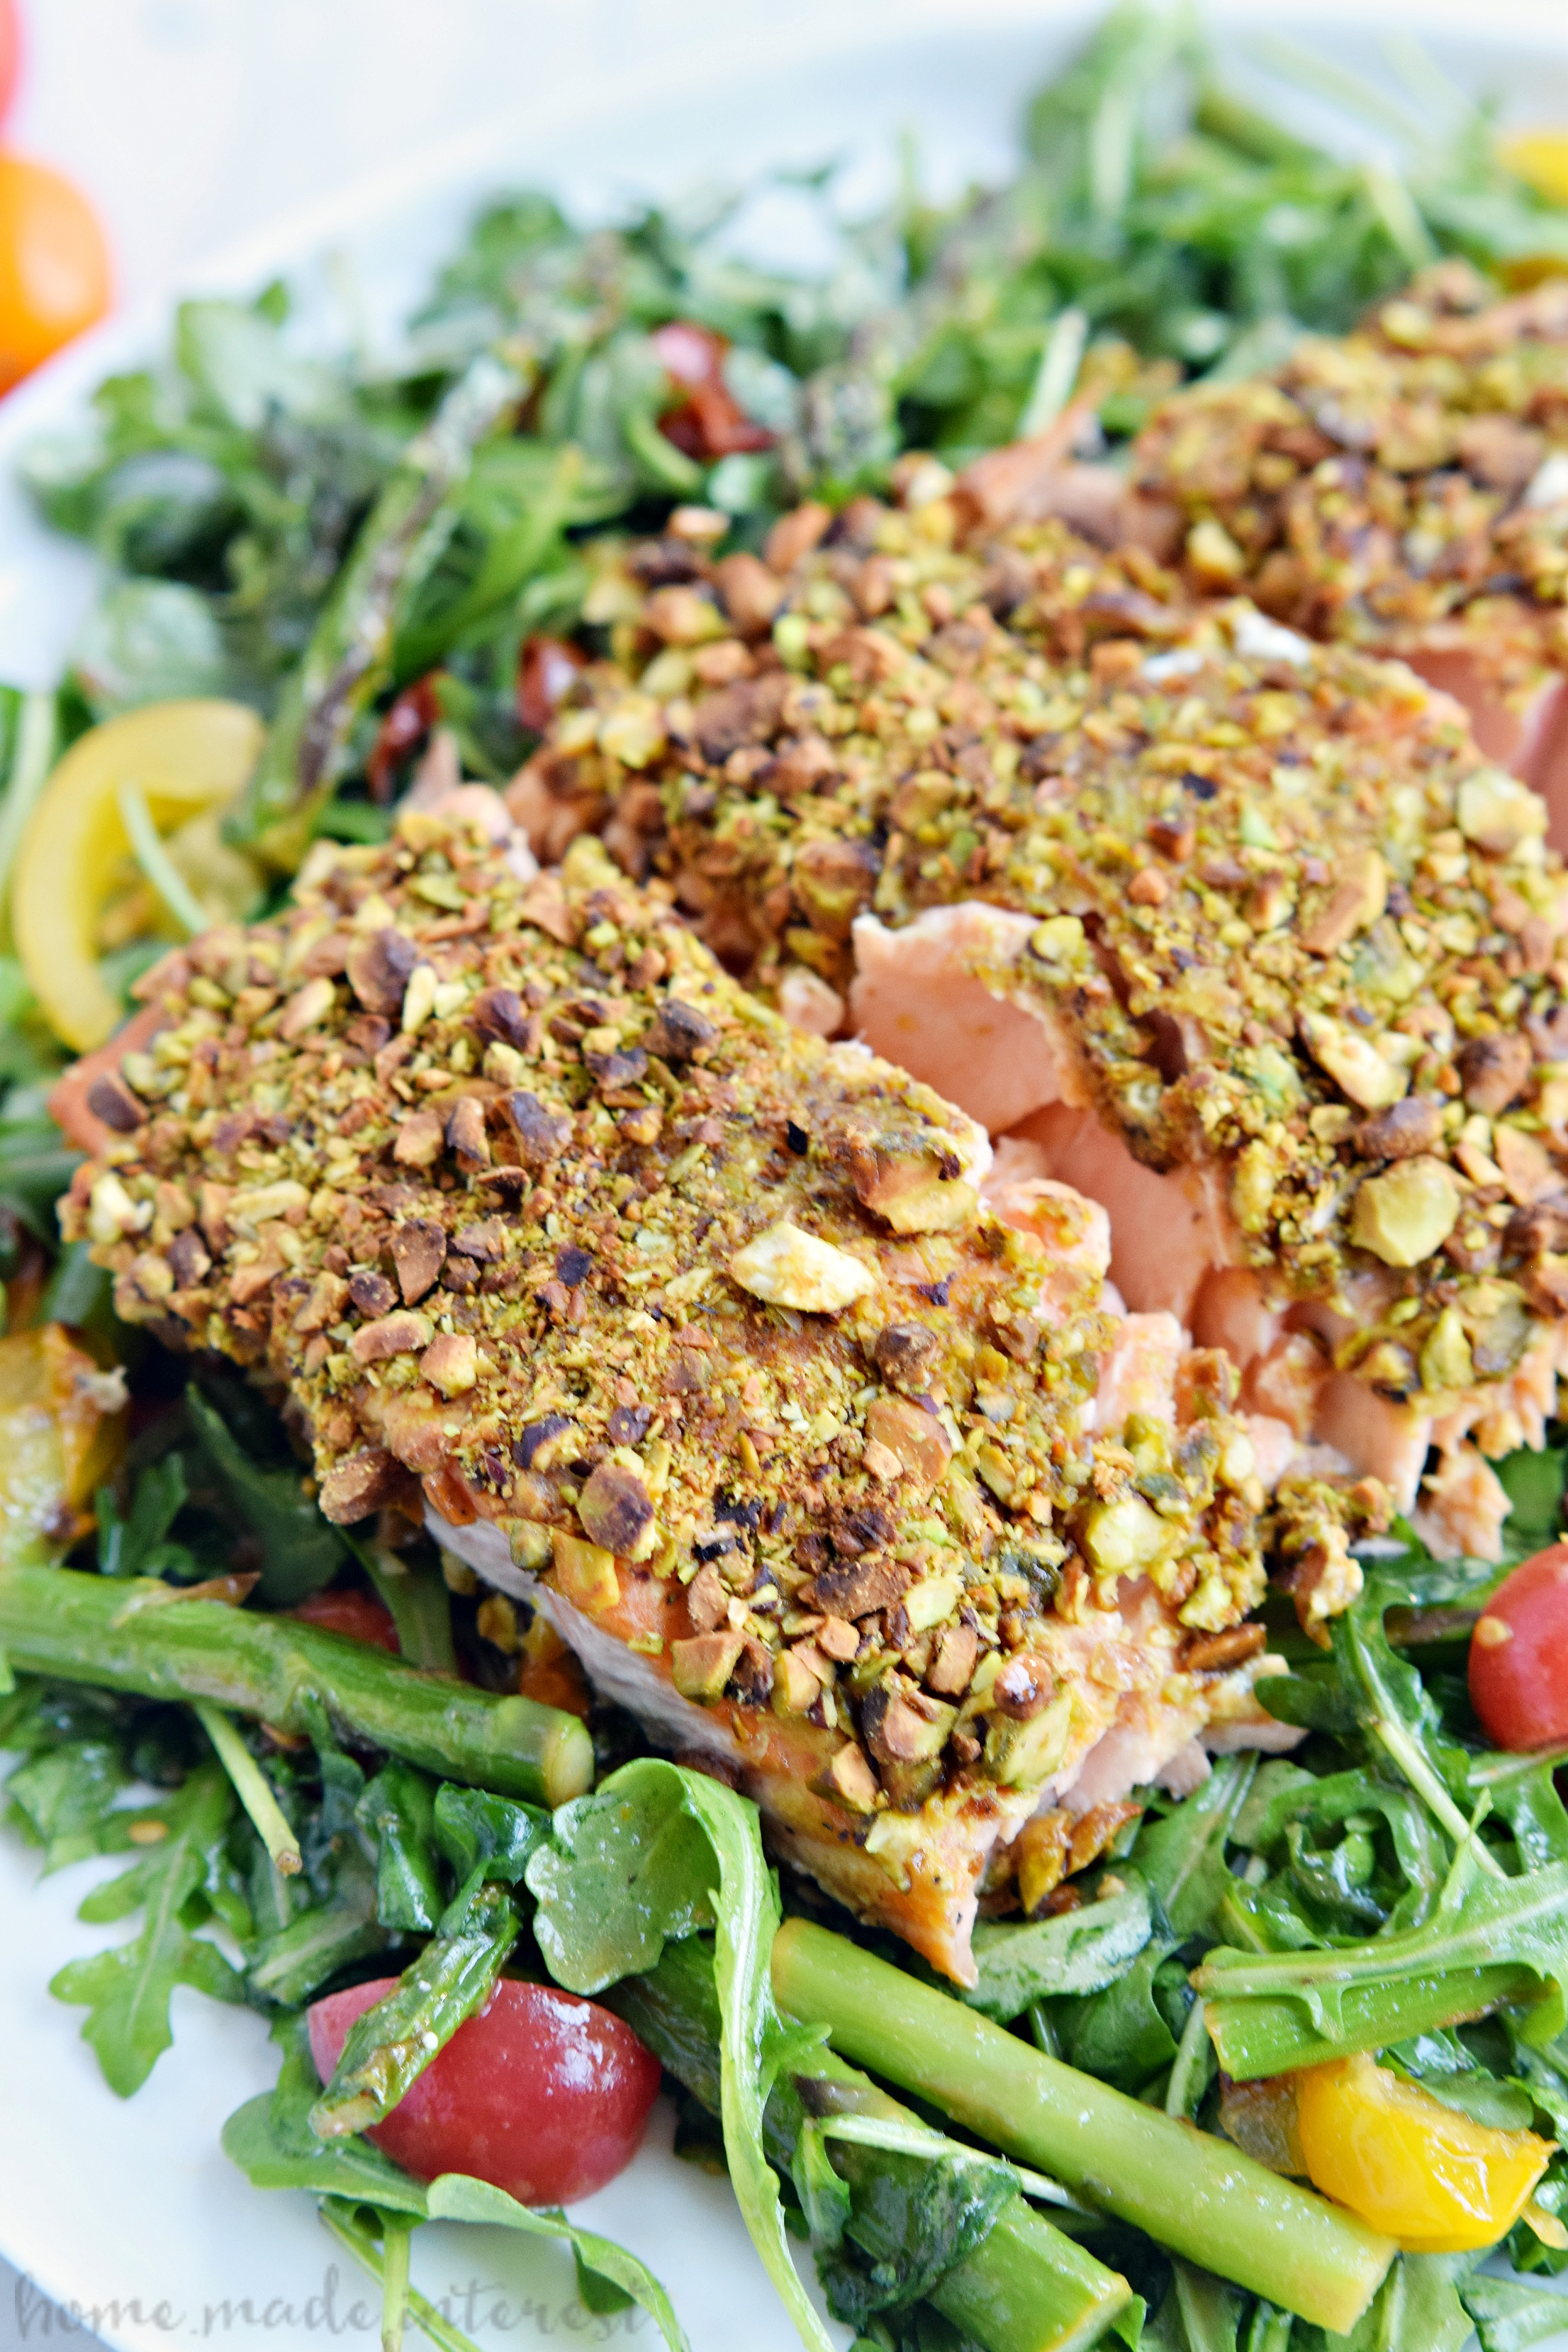 This Pistachio Crusted Salmon recipe is elegant enough for a dinner party and makes an easy weeknight dinner recipe. Pistachio and Dijon mustard pair together perfectly in this healthy low carb recipe.